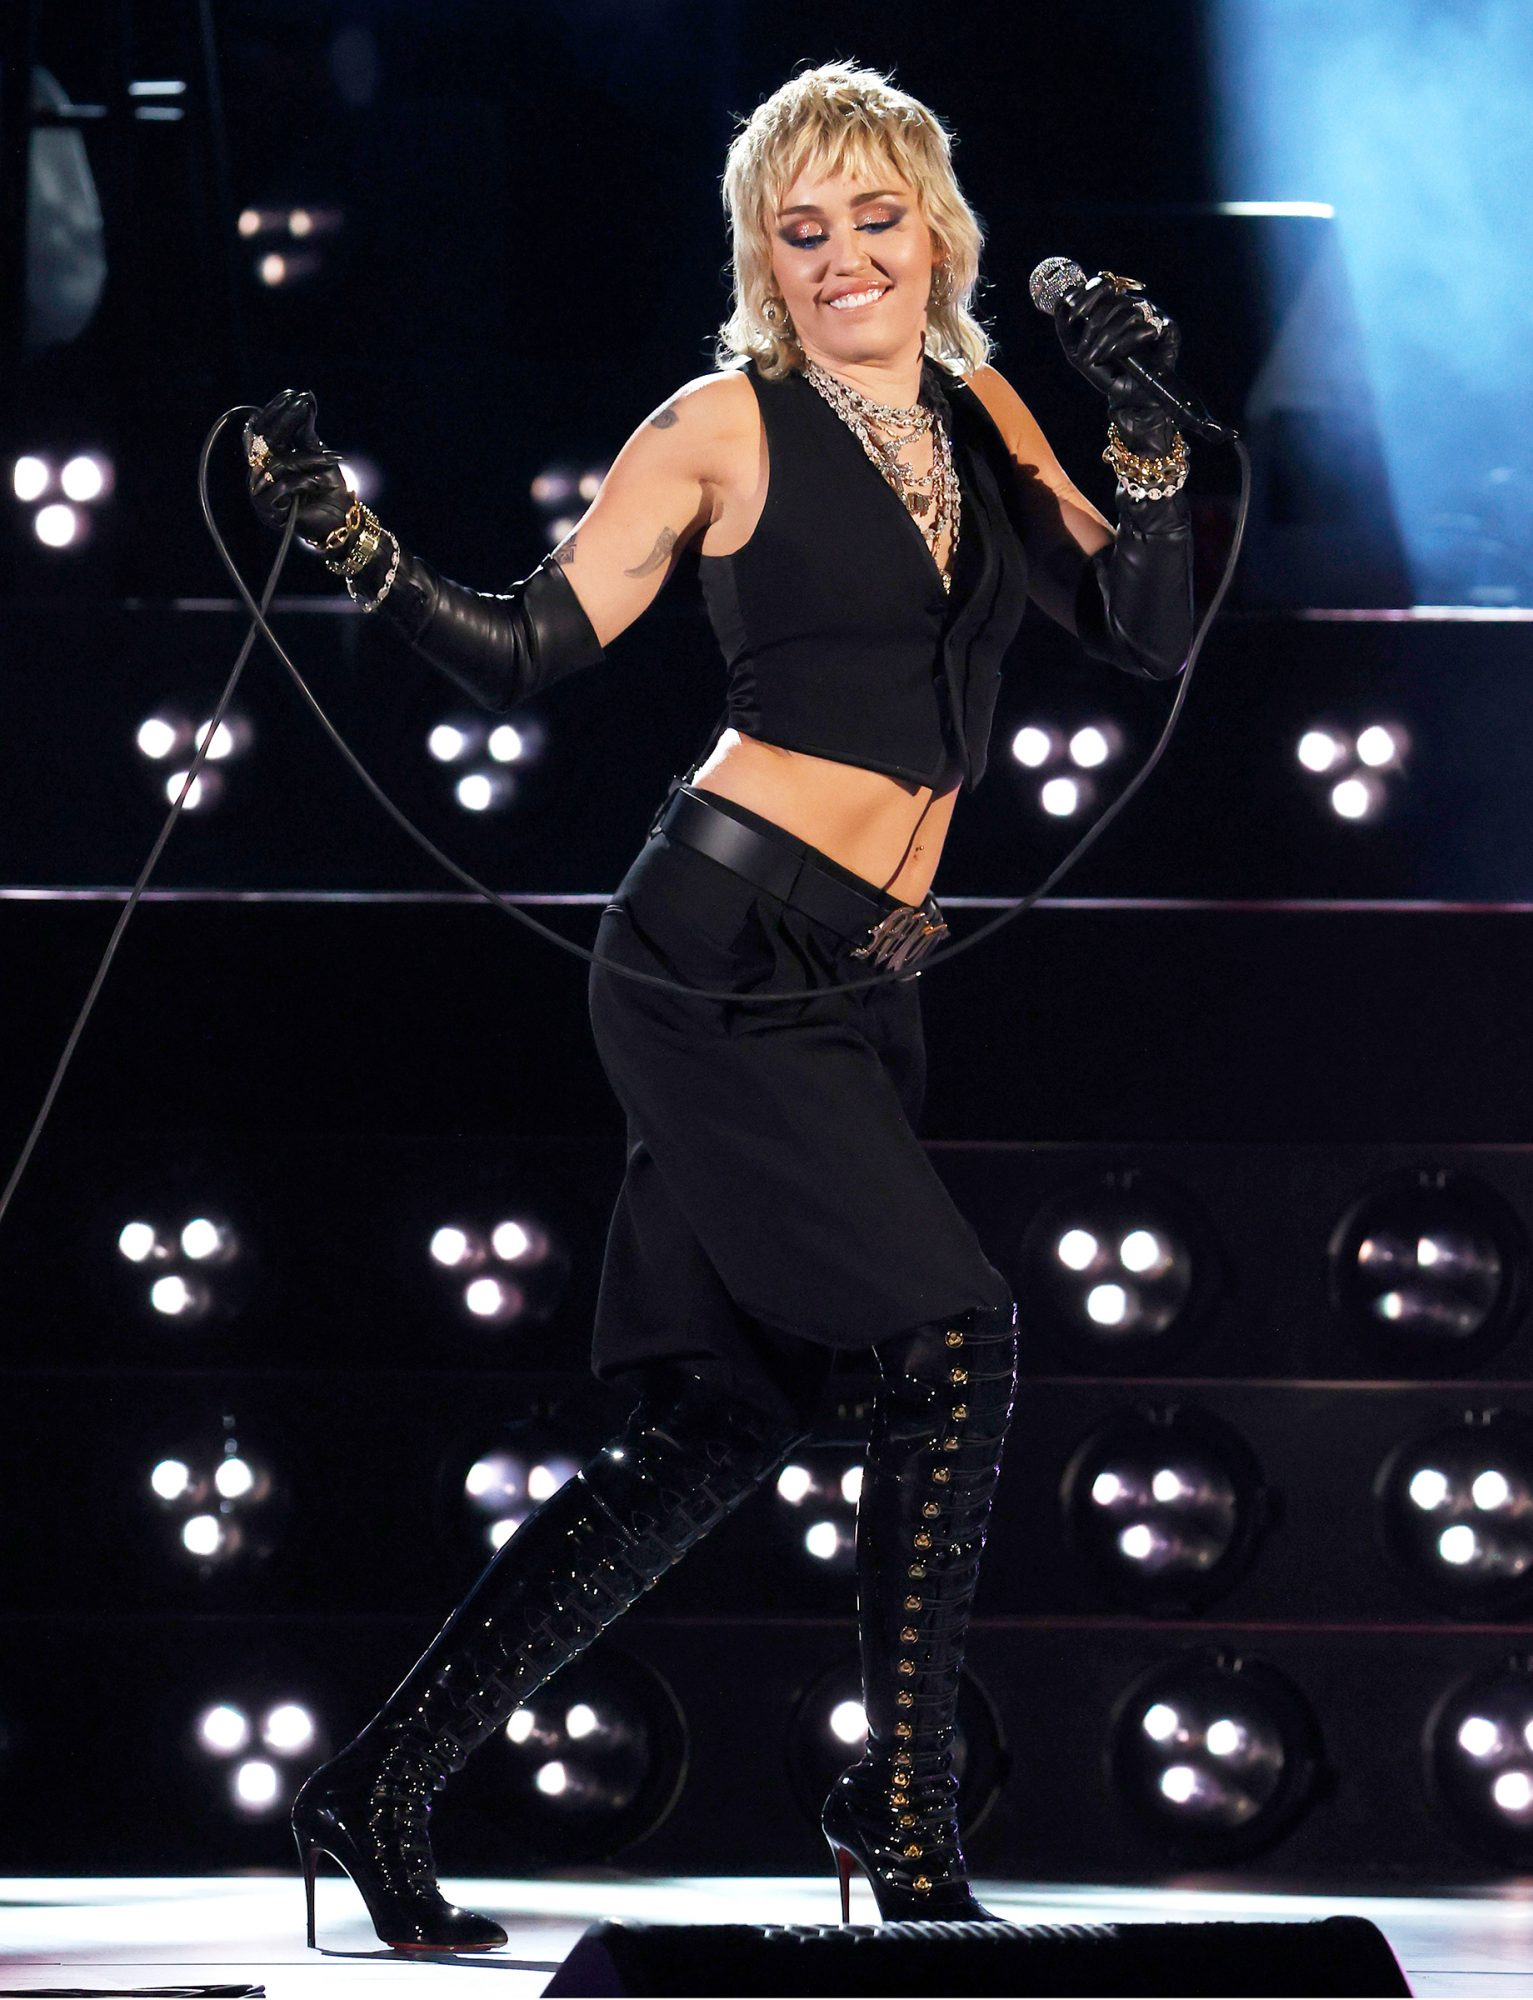 Miley Cyrus performs a Tribute to Frontline Heroes during the 2021 NCAA Final Four at Lucas Oil Stadium on April 03, 2021 in Indianapolis, Indiana